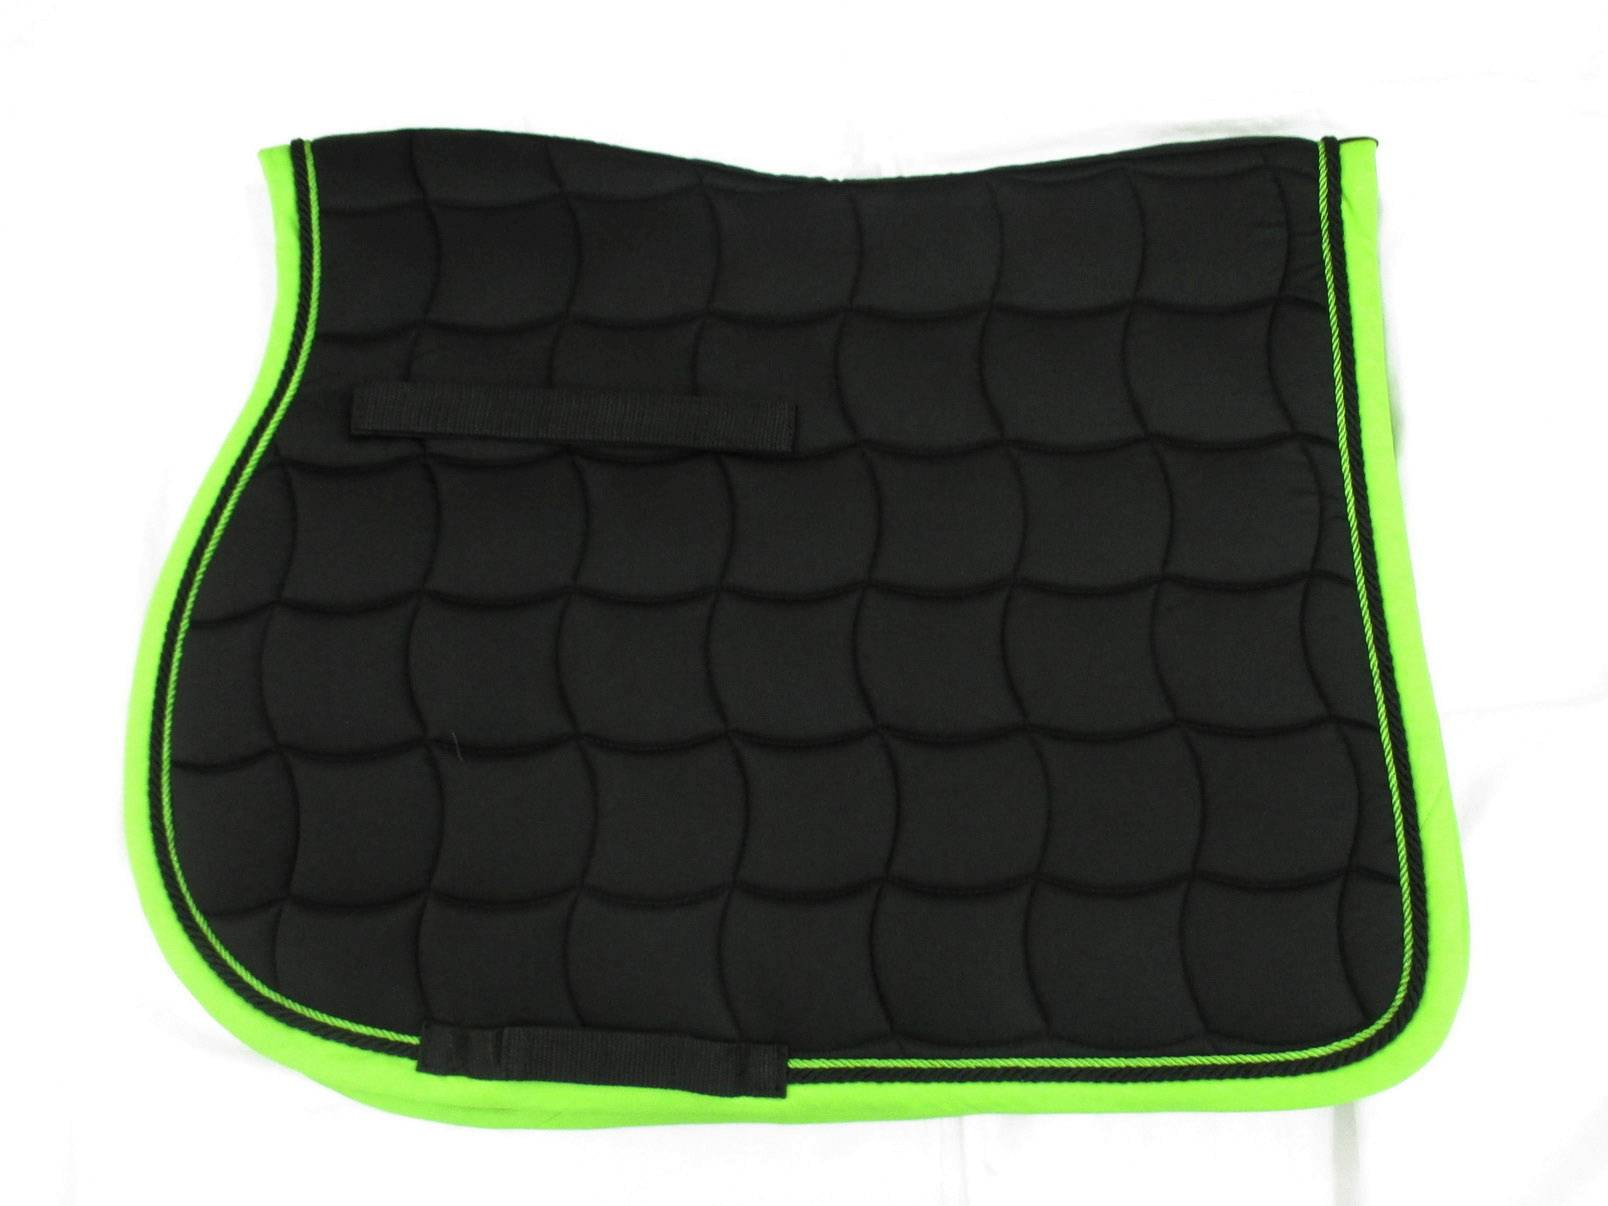 Lami-Cell Black Diamond All Purpose Saddle Pad